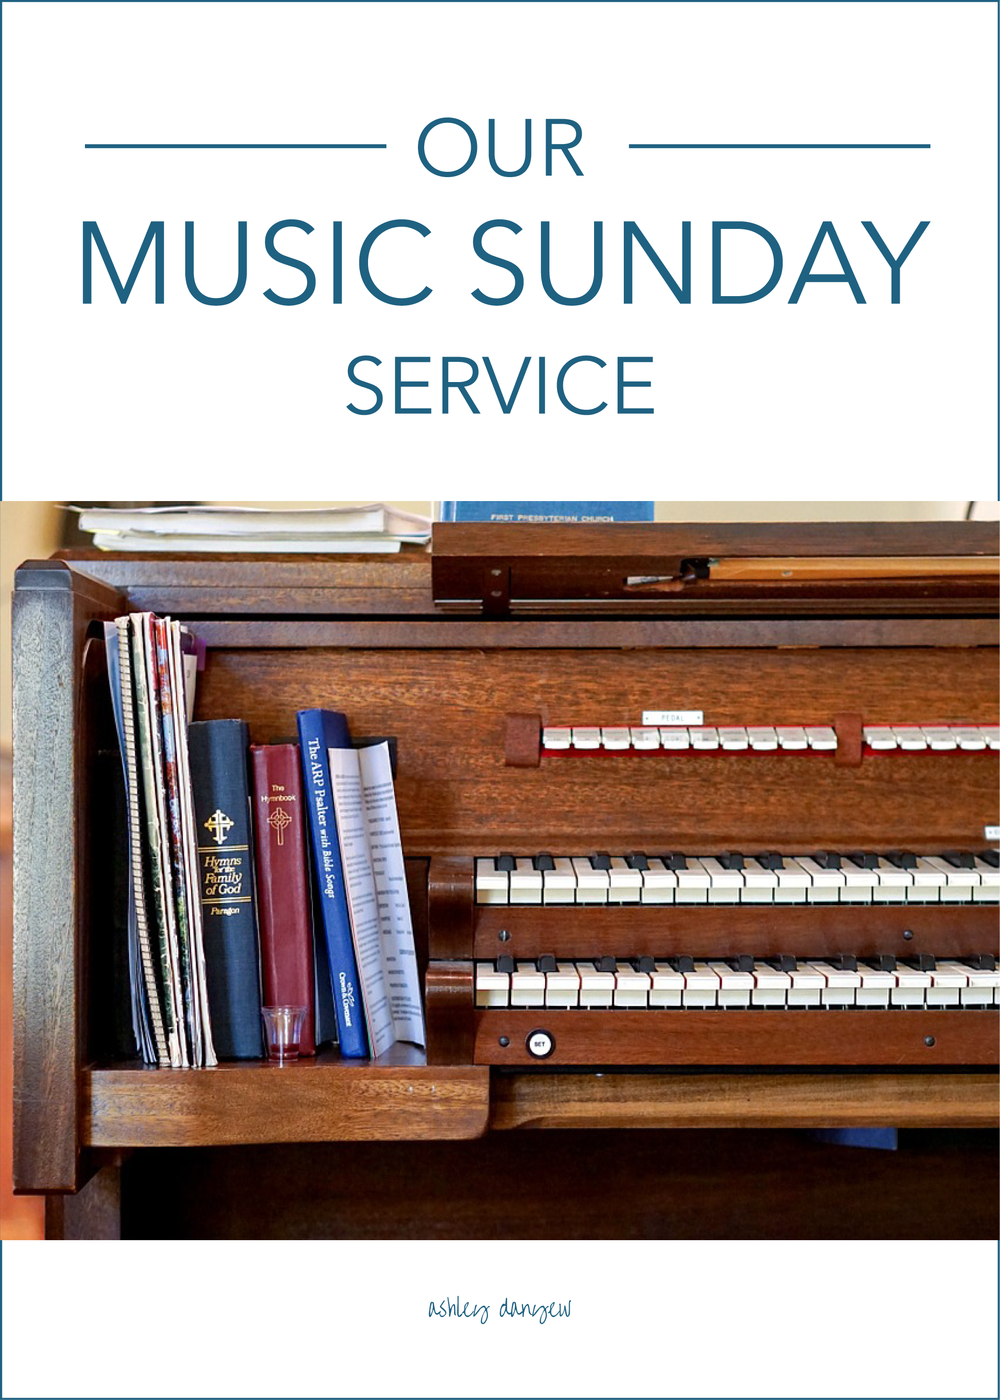 Copy of Our Music Sunday Service